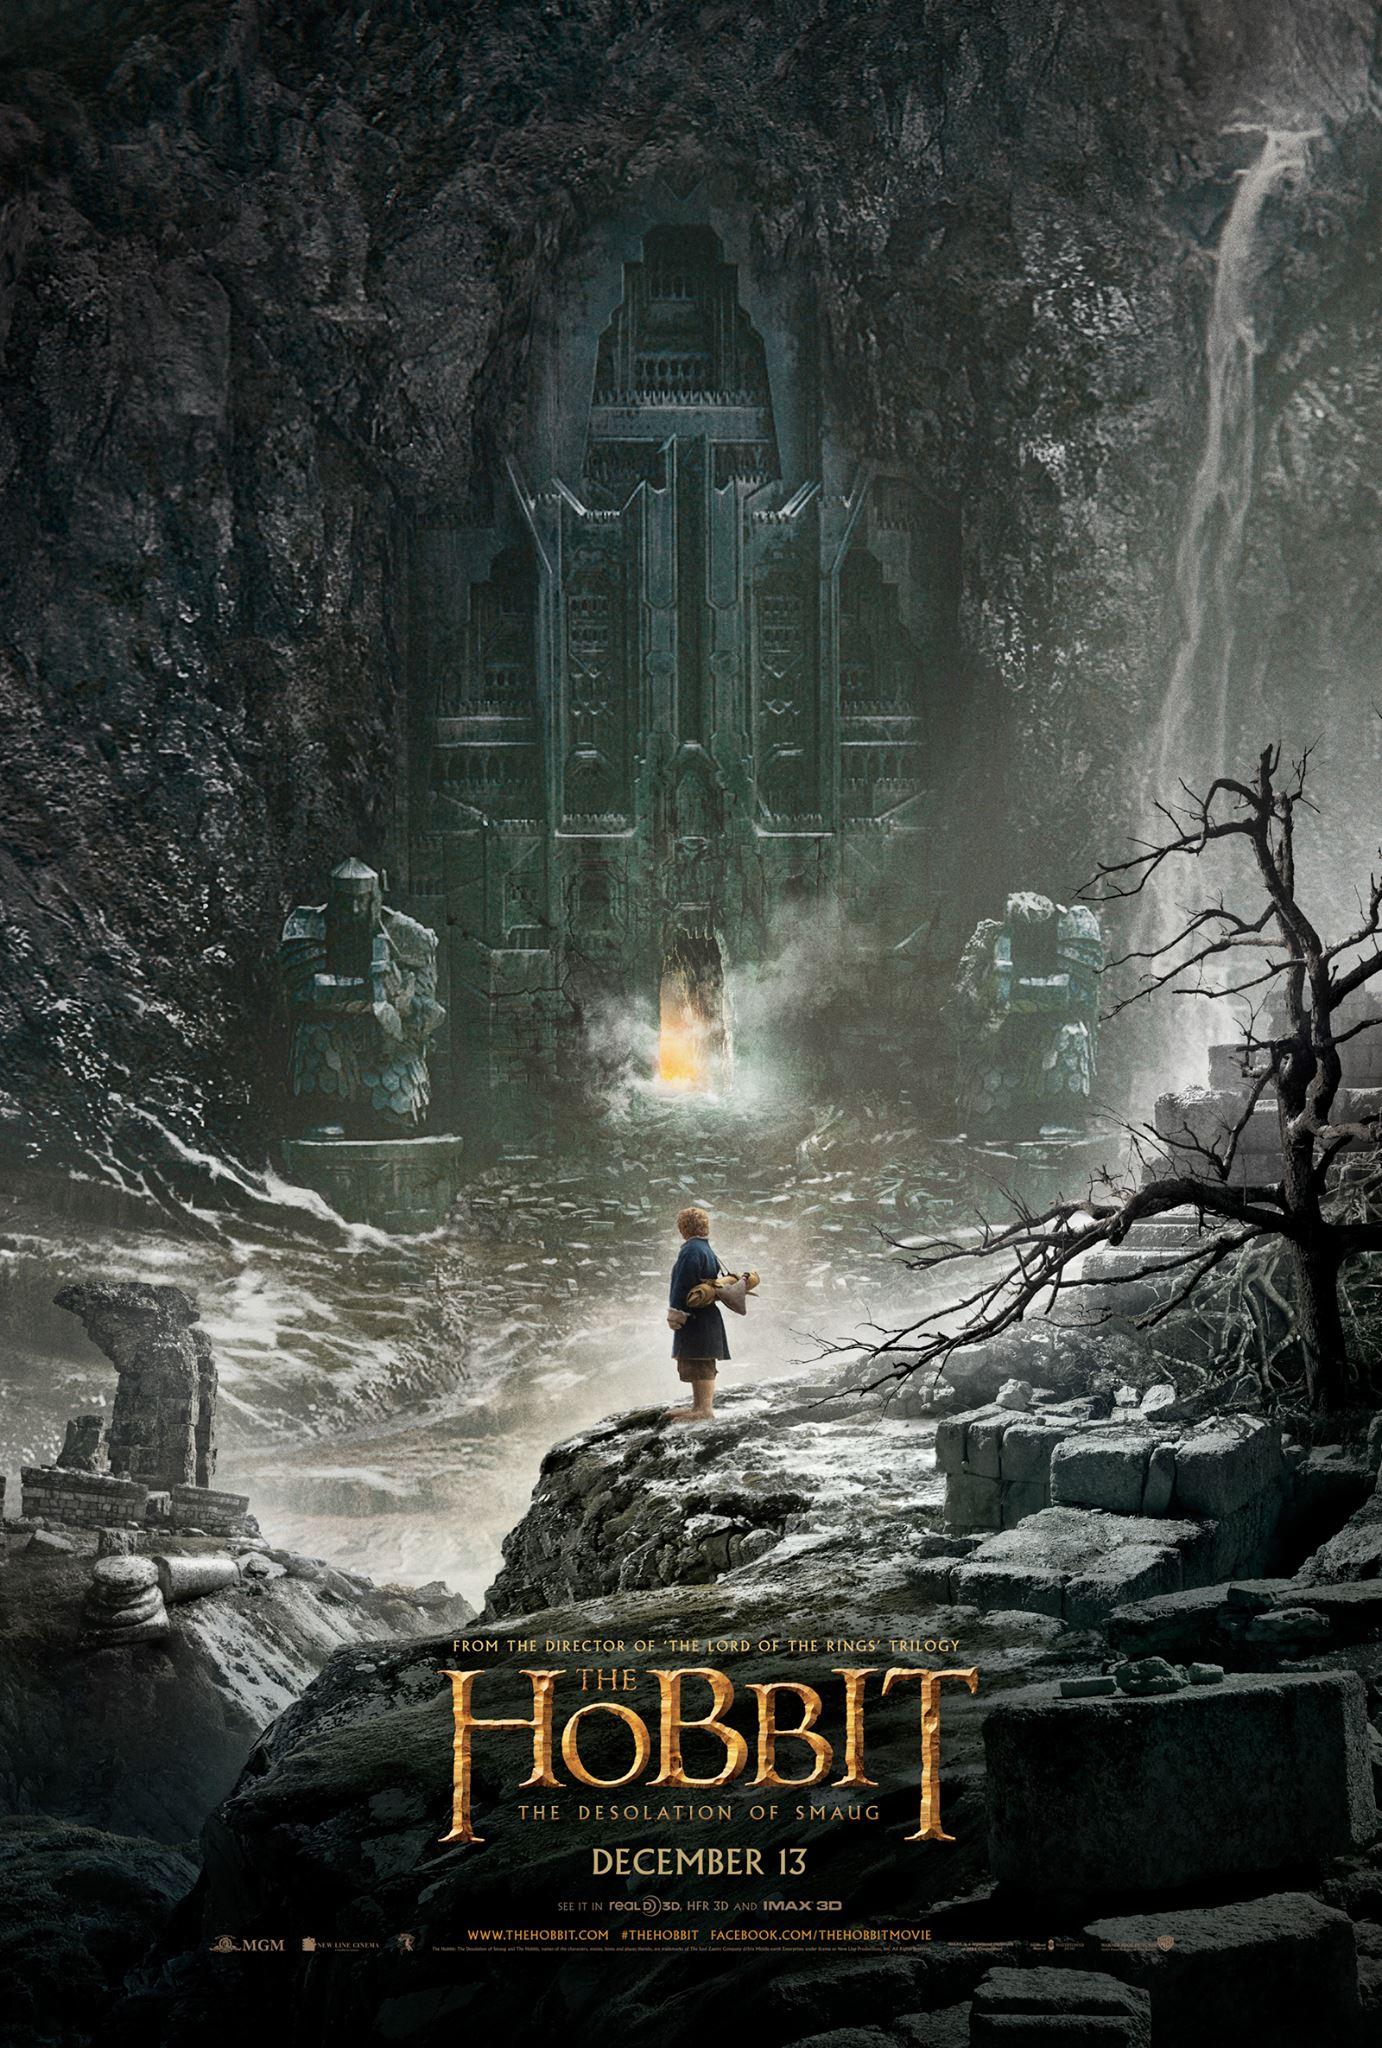 desolation of smaug poster